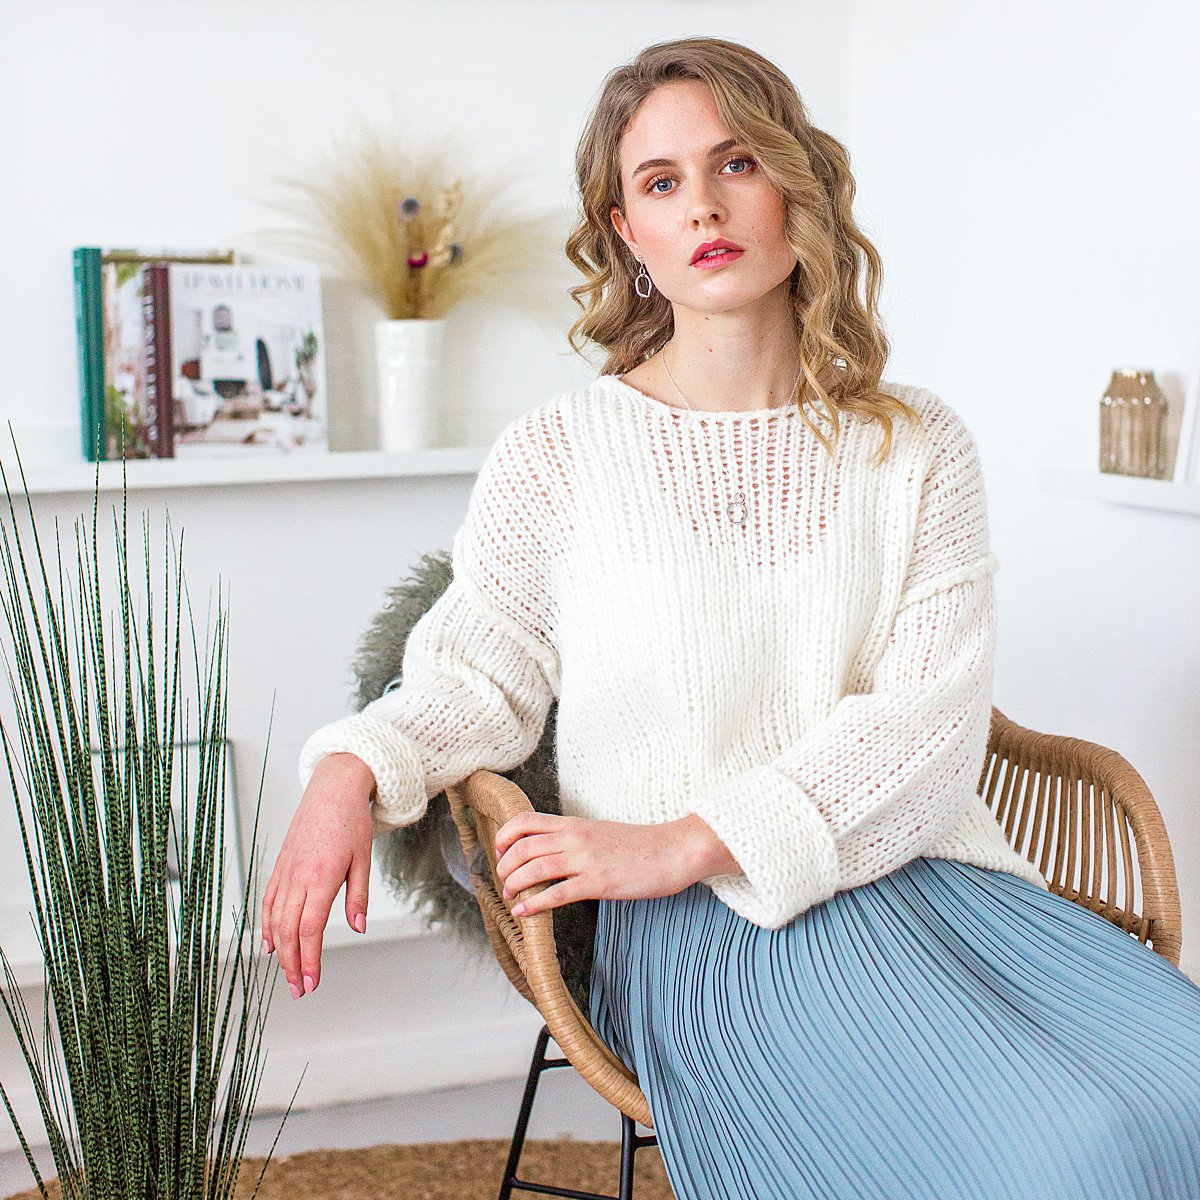 Lifestyle and fashion photography shoot for Jo&Co. Styled lifestyle editorial photography by Marianne Taylor.